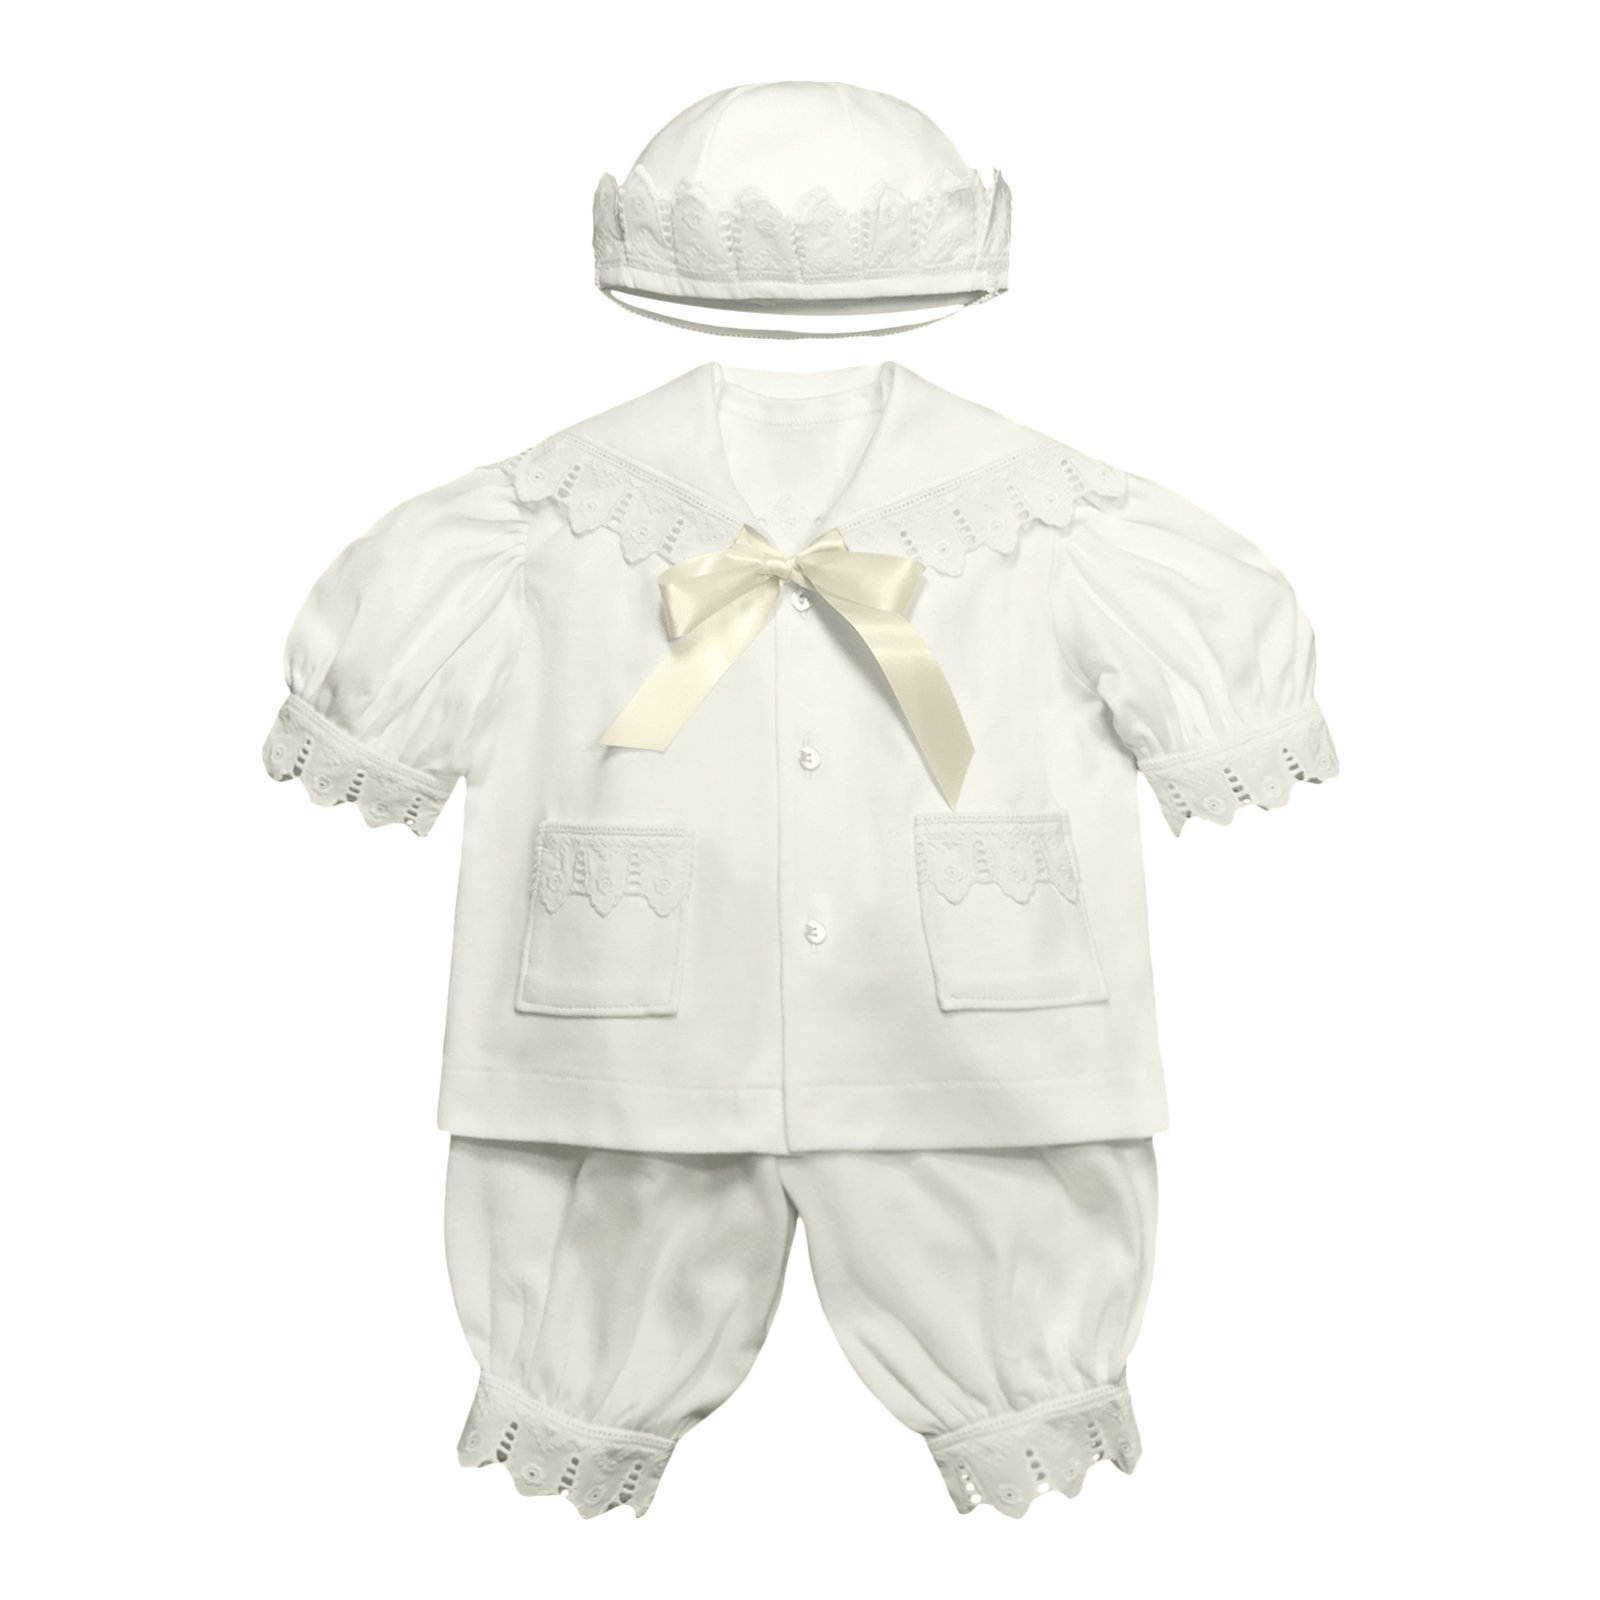 Victorian Organics Baby Boy Sailor Set 4 Piece Organic Cotton Knit and Eyelet Lace Trim Jacket Hat Bodysuit and Pantaloons (NB 0-3 months)